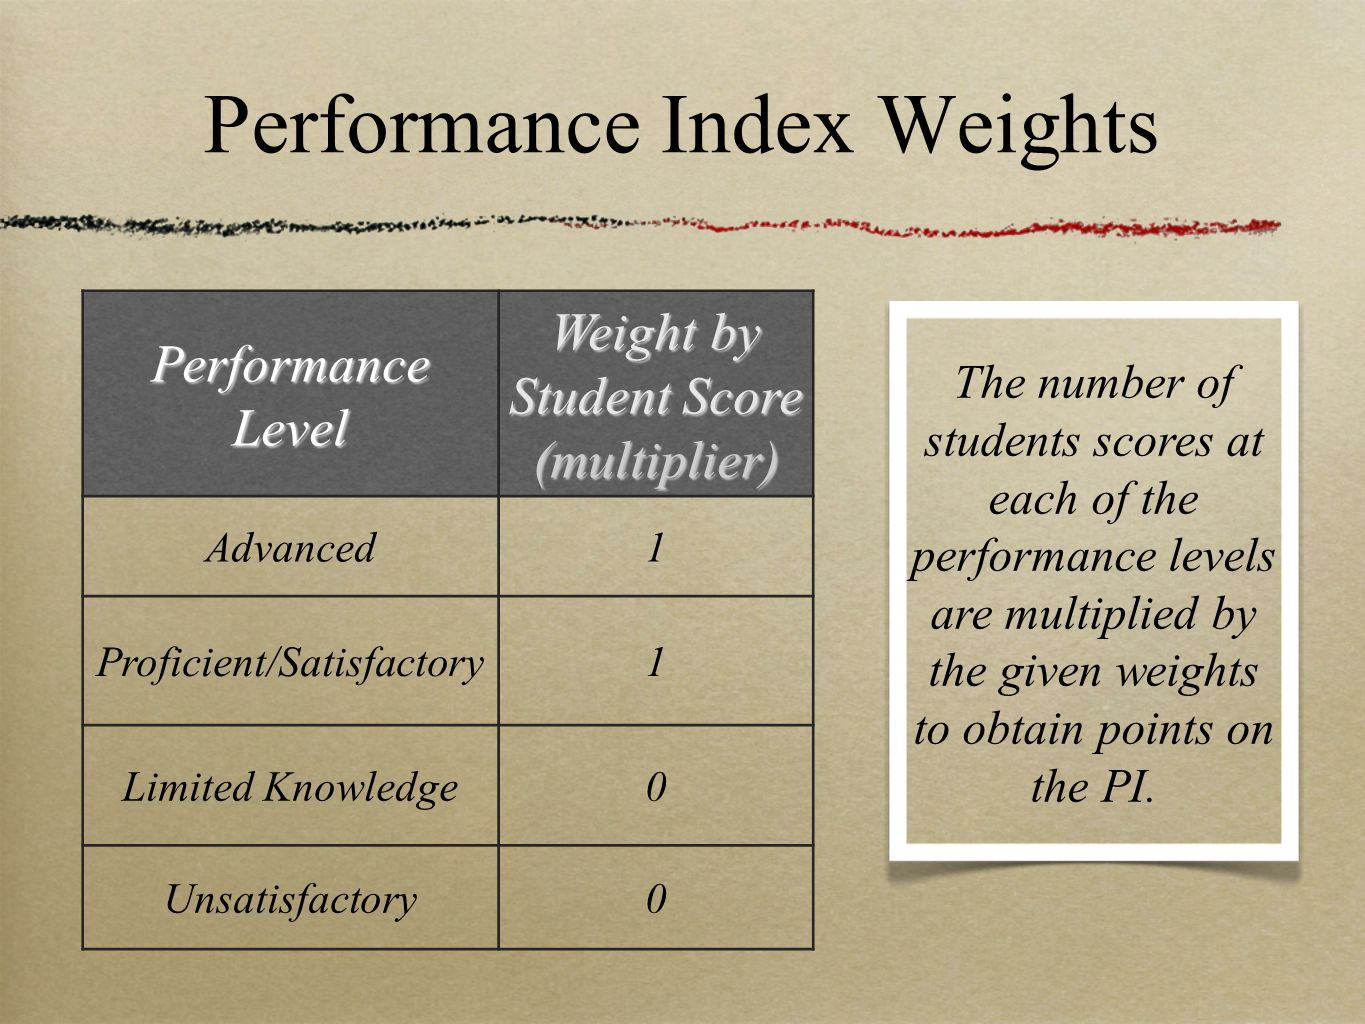 Performance Index Weights Performance Level Weight by Student Score (multiplier) Advanced1 Proficient/Satisfactory1 Limited Knowledge0 Unsatisfactory0